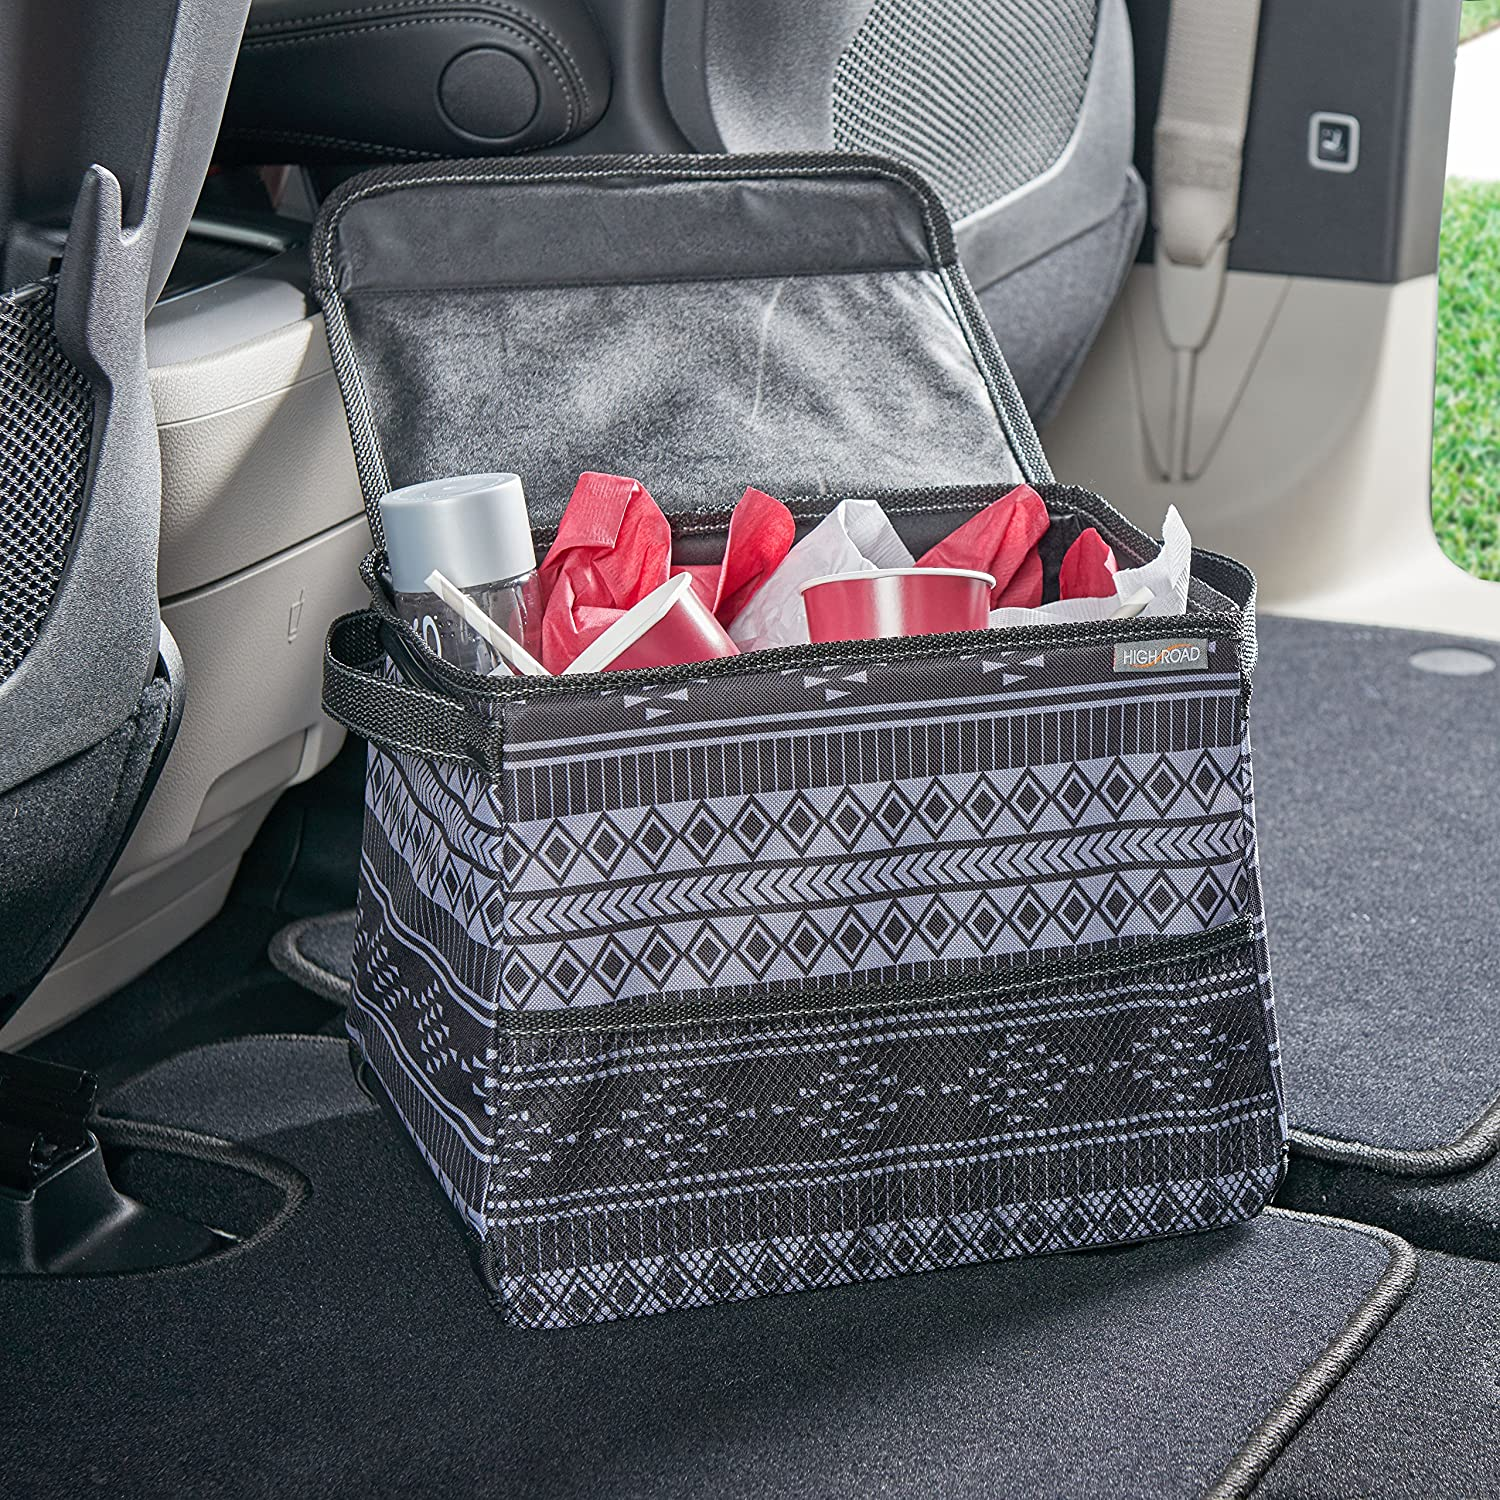 TALU2 High Road StableMate Large Covered Car Trash Can with Leakproof Lining Sahara Talus